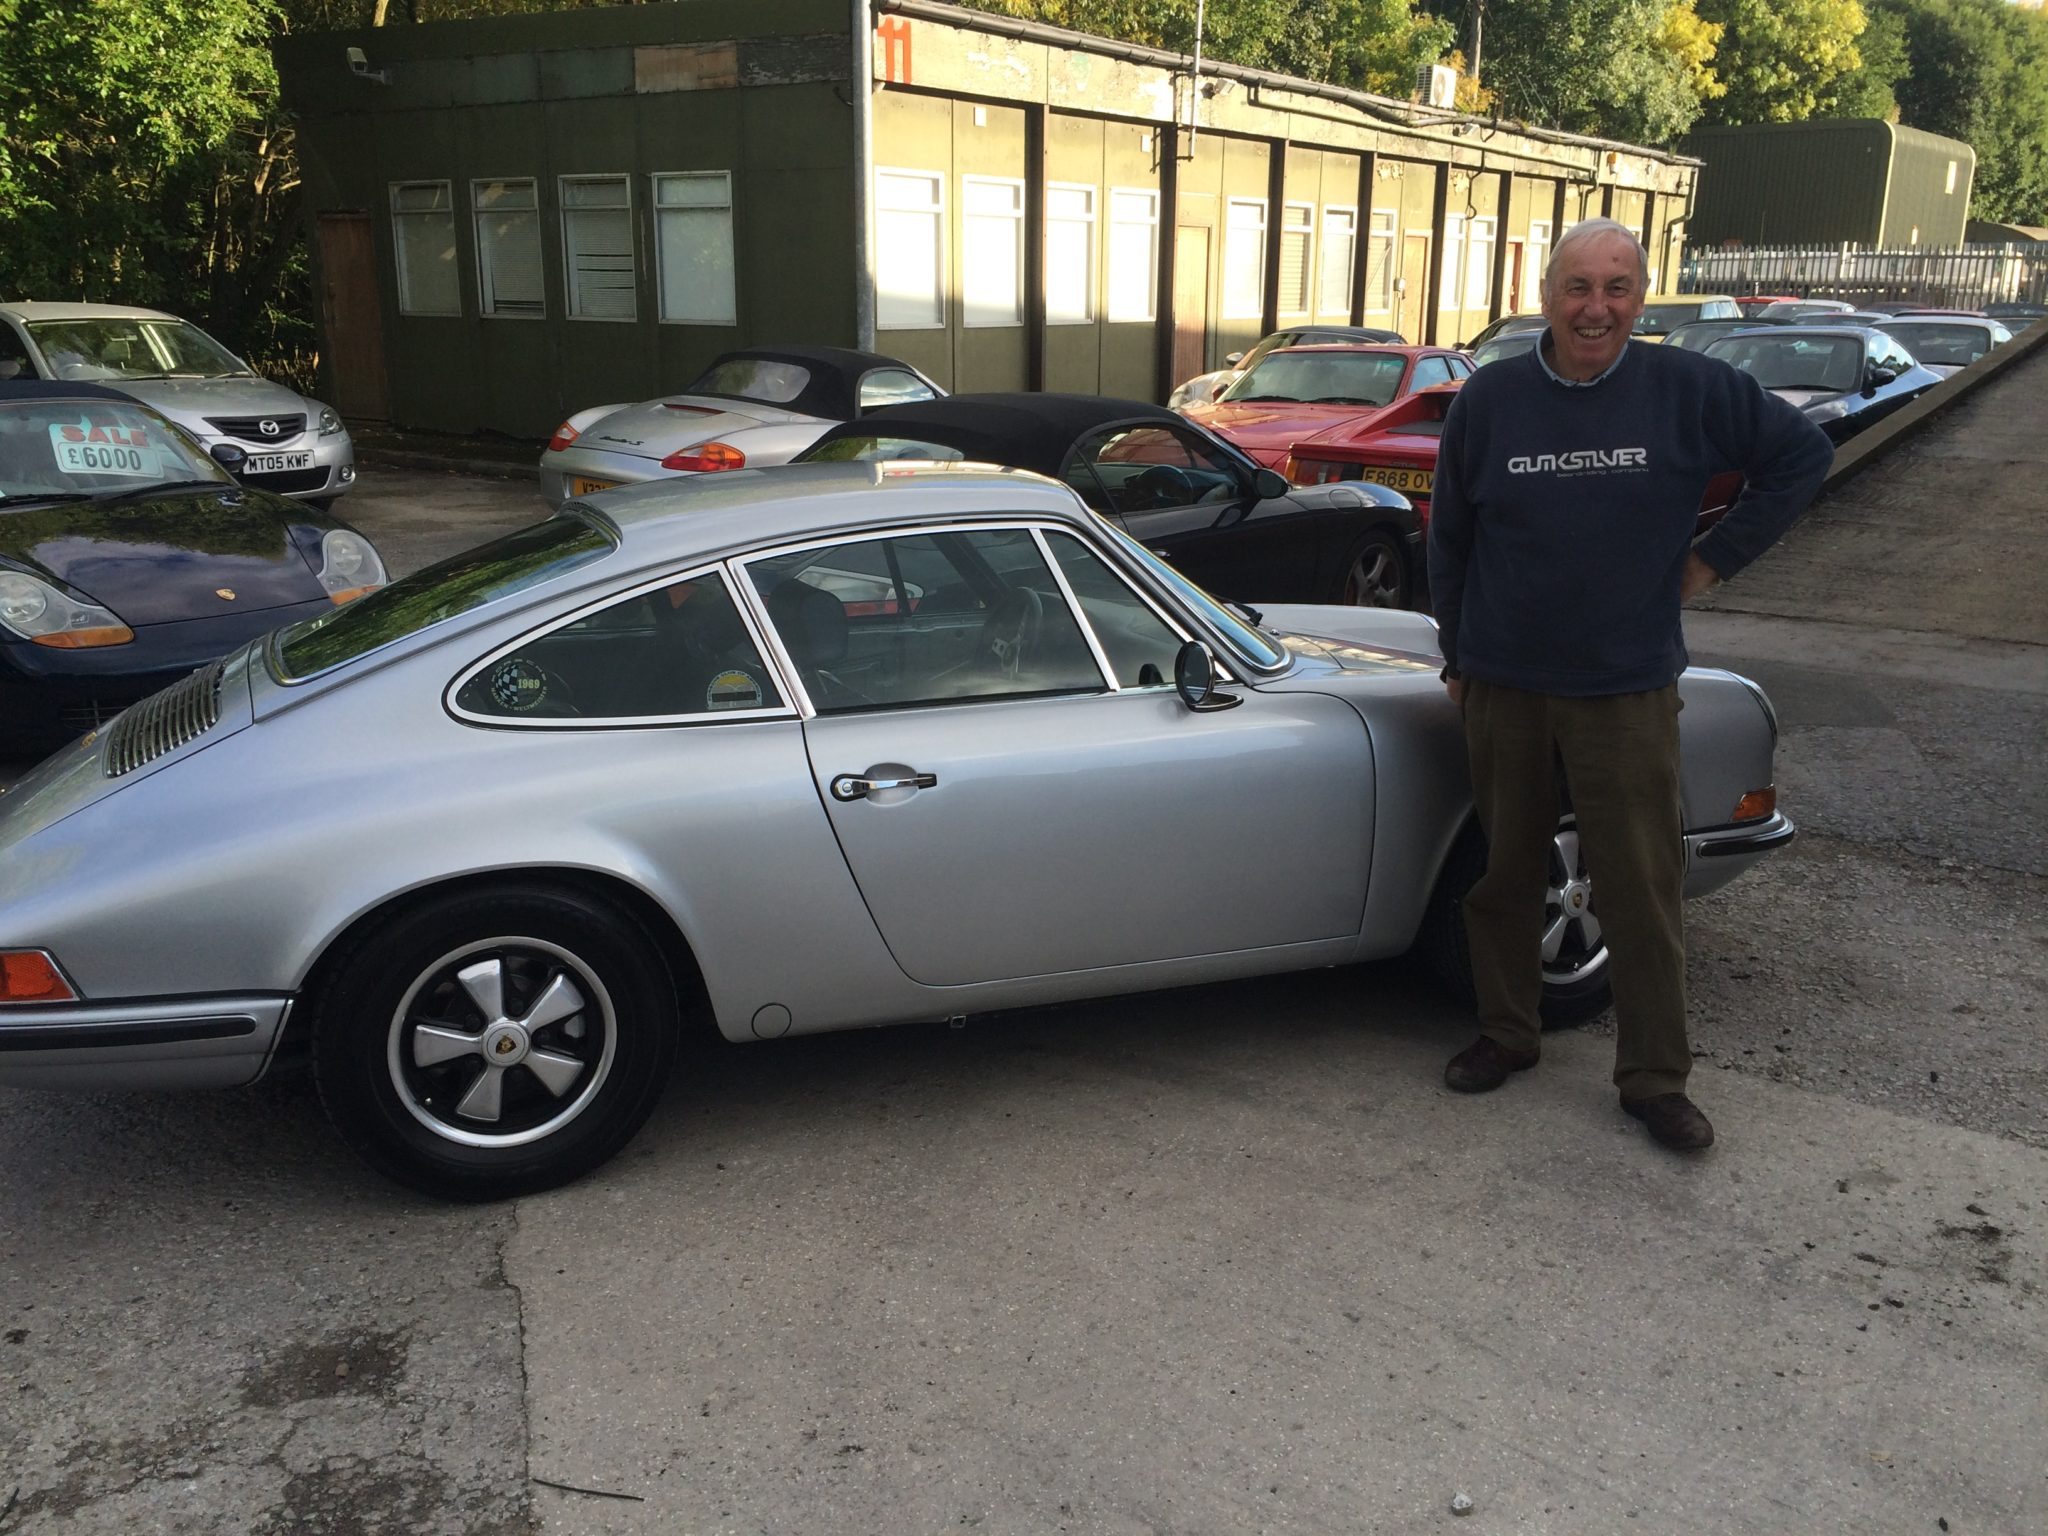 DAVID'S IMMACULATE 1970 911 E COMPLETED